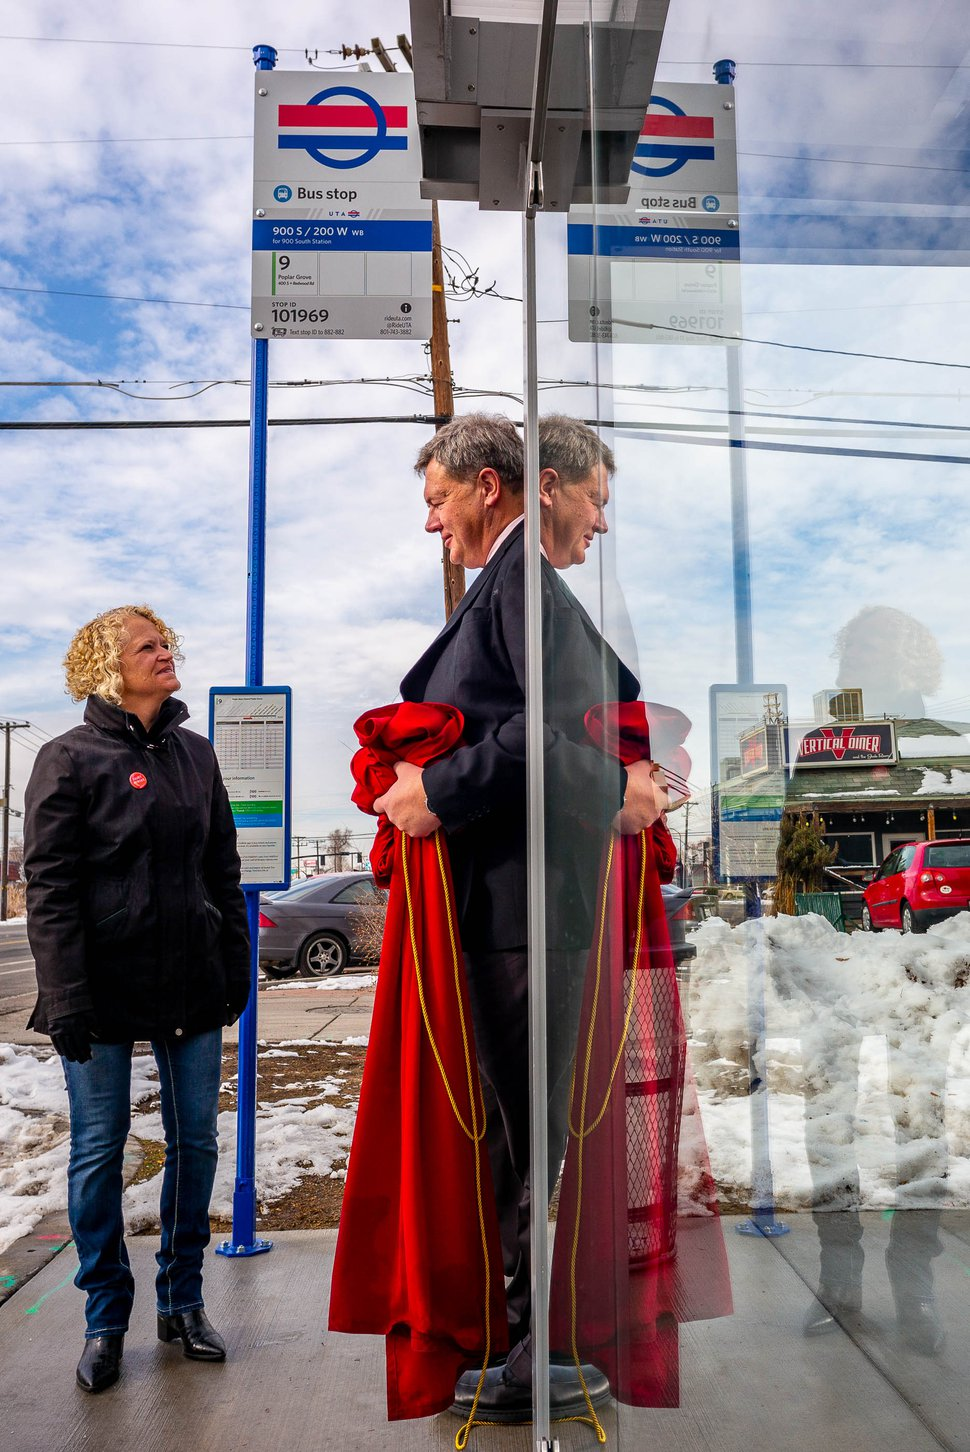 (Trent Nelson | The Salt Lake Tribune) Salt Lake City Mayor Jackie Biskupski and UTA's Carlton Christensen unveil a new sign intended to make bus stops more identifiable at a news conference in Salt Lake City on Monday Dec. 2, 2019.